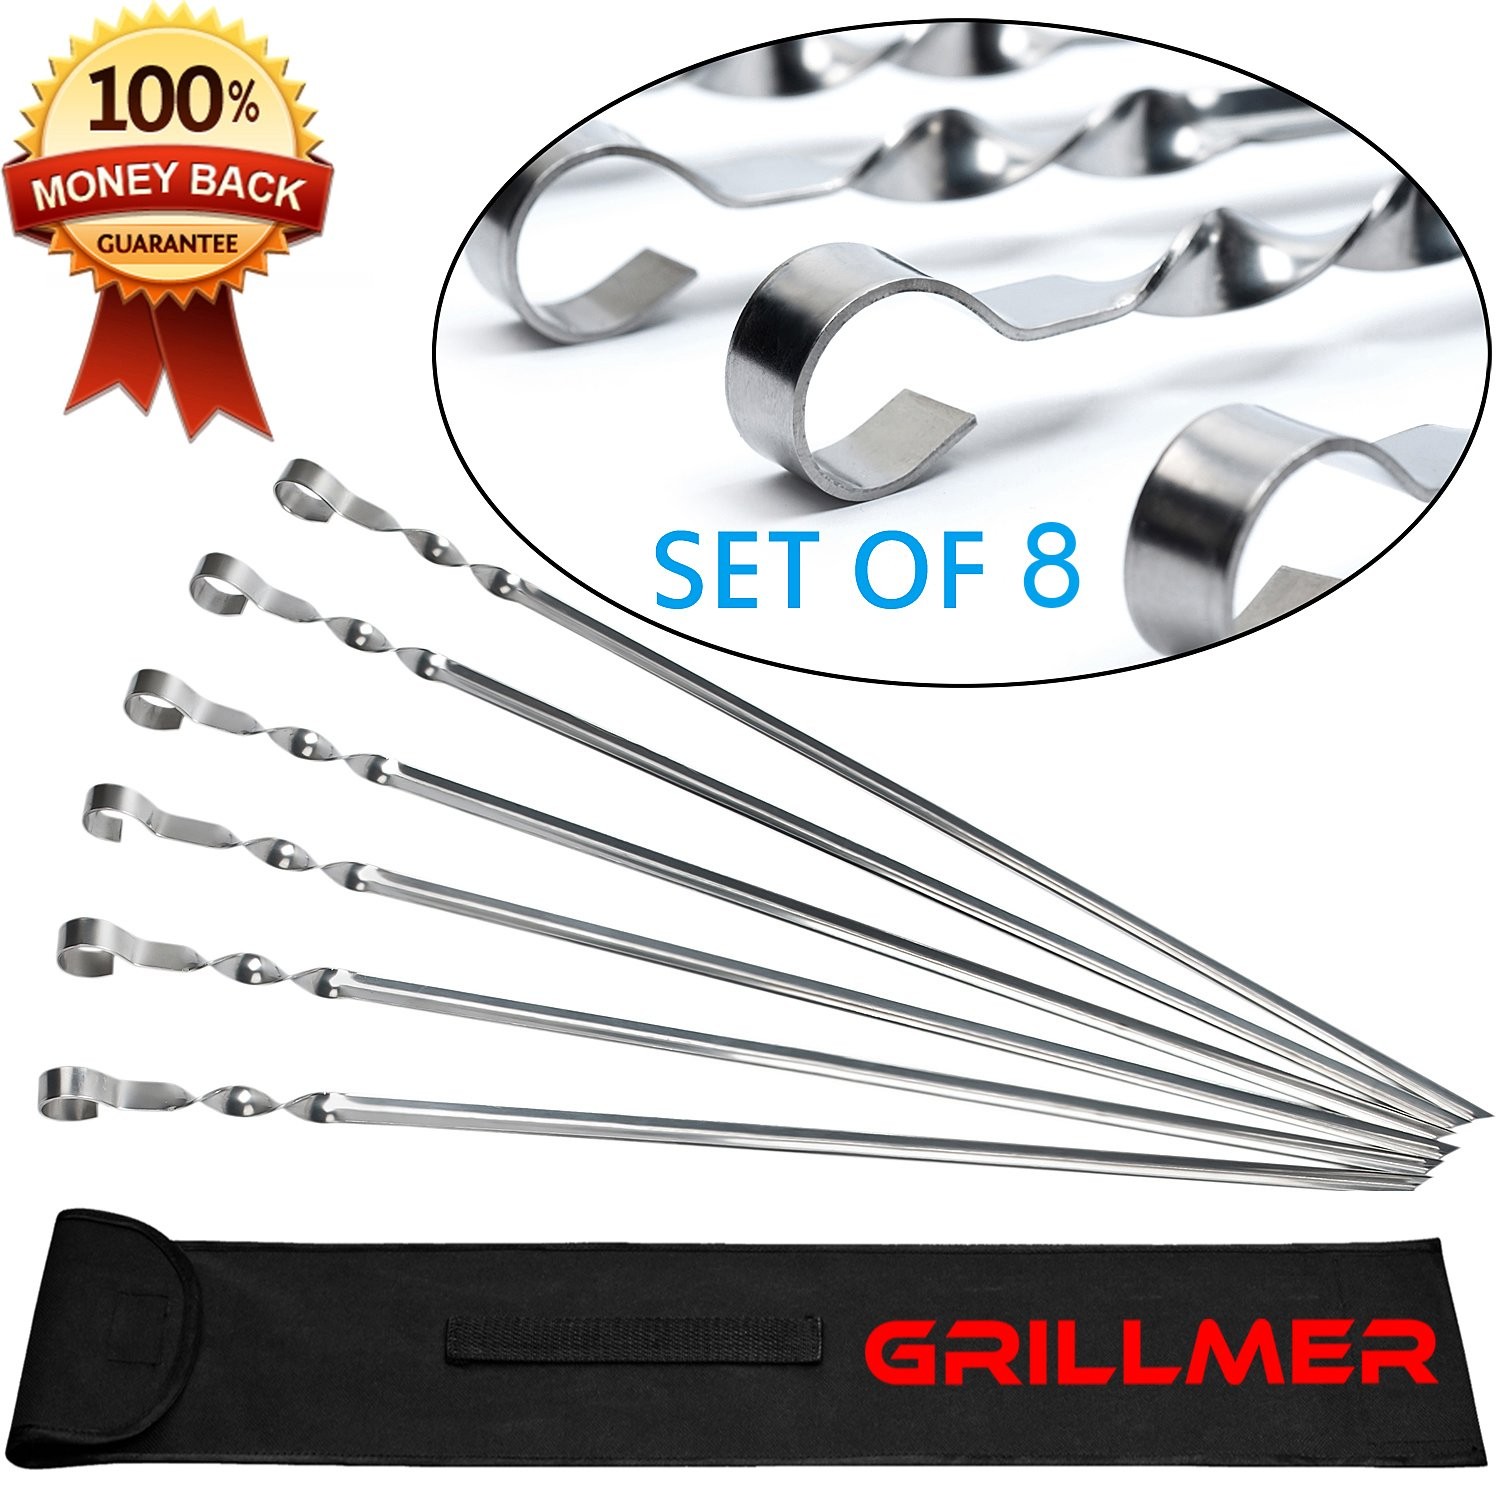 BBQ Barbecue Skewers Stainless Steel Long 23 inch Set of 8 Piece Heavy Duty Large Flat Grilling Reusable Kabob Sticks with NonSlip Ring Handle Ideal for Shish Kebab Shrimp Chicken and Vegetables by GRILLMER